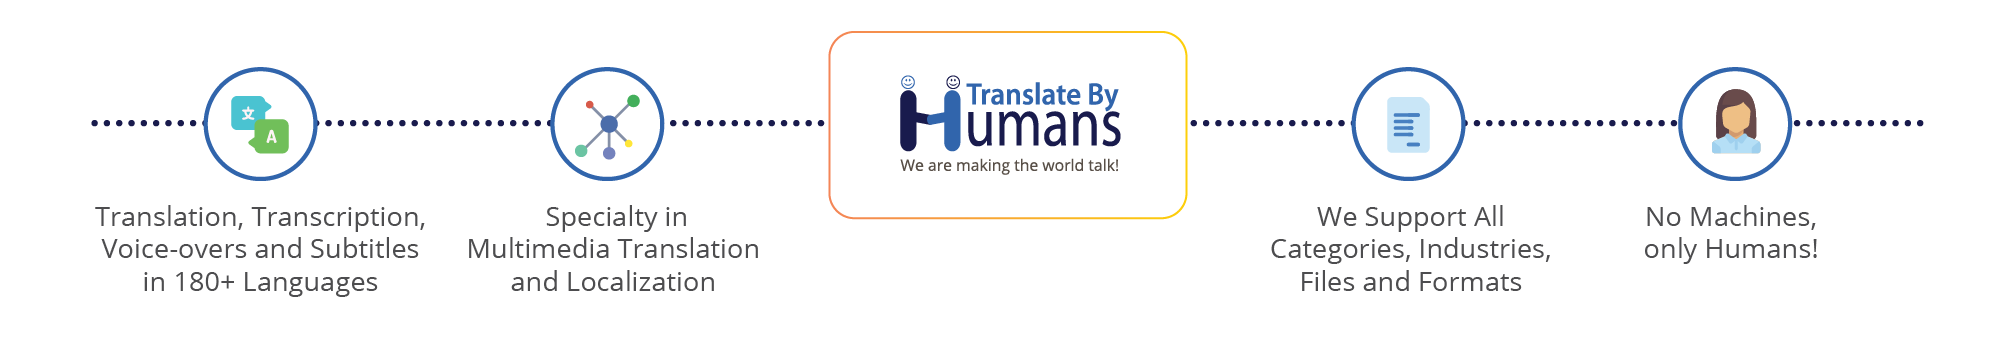 About Translate By Humans